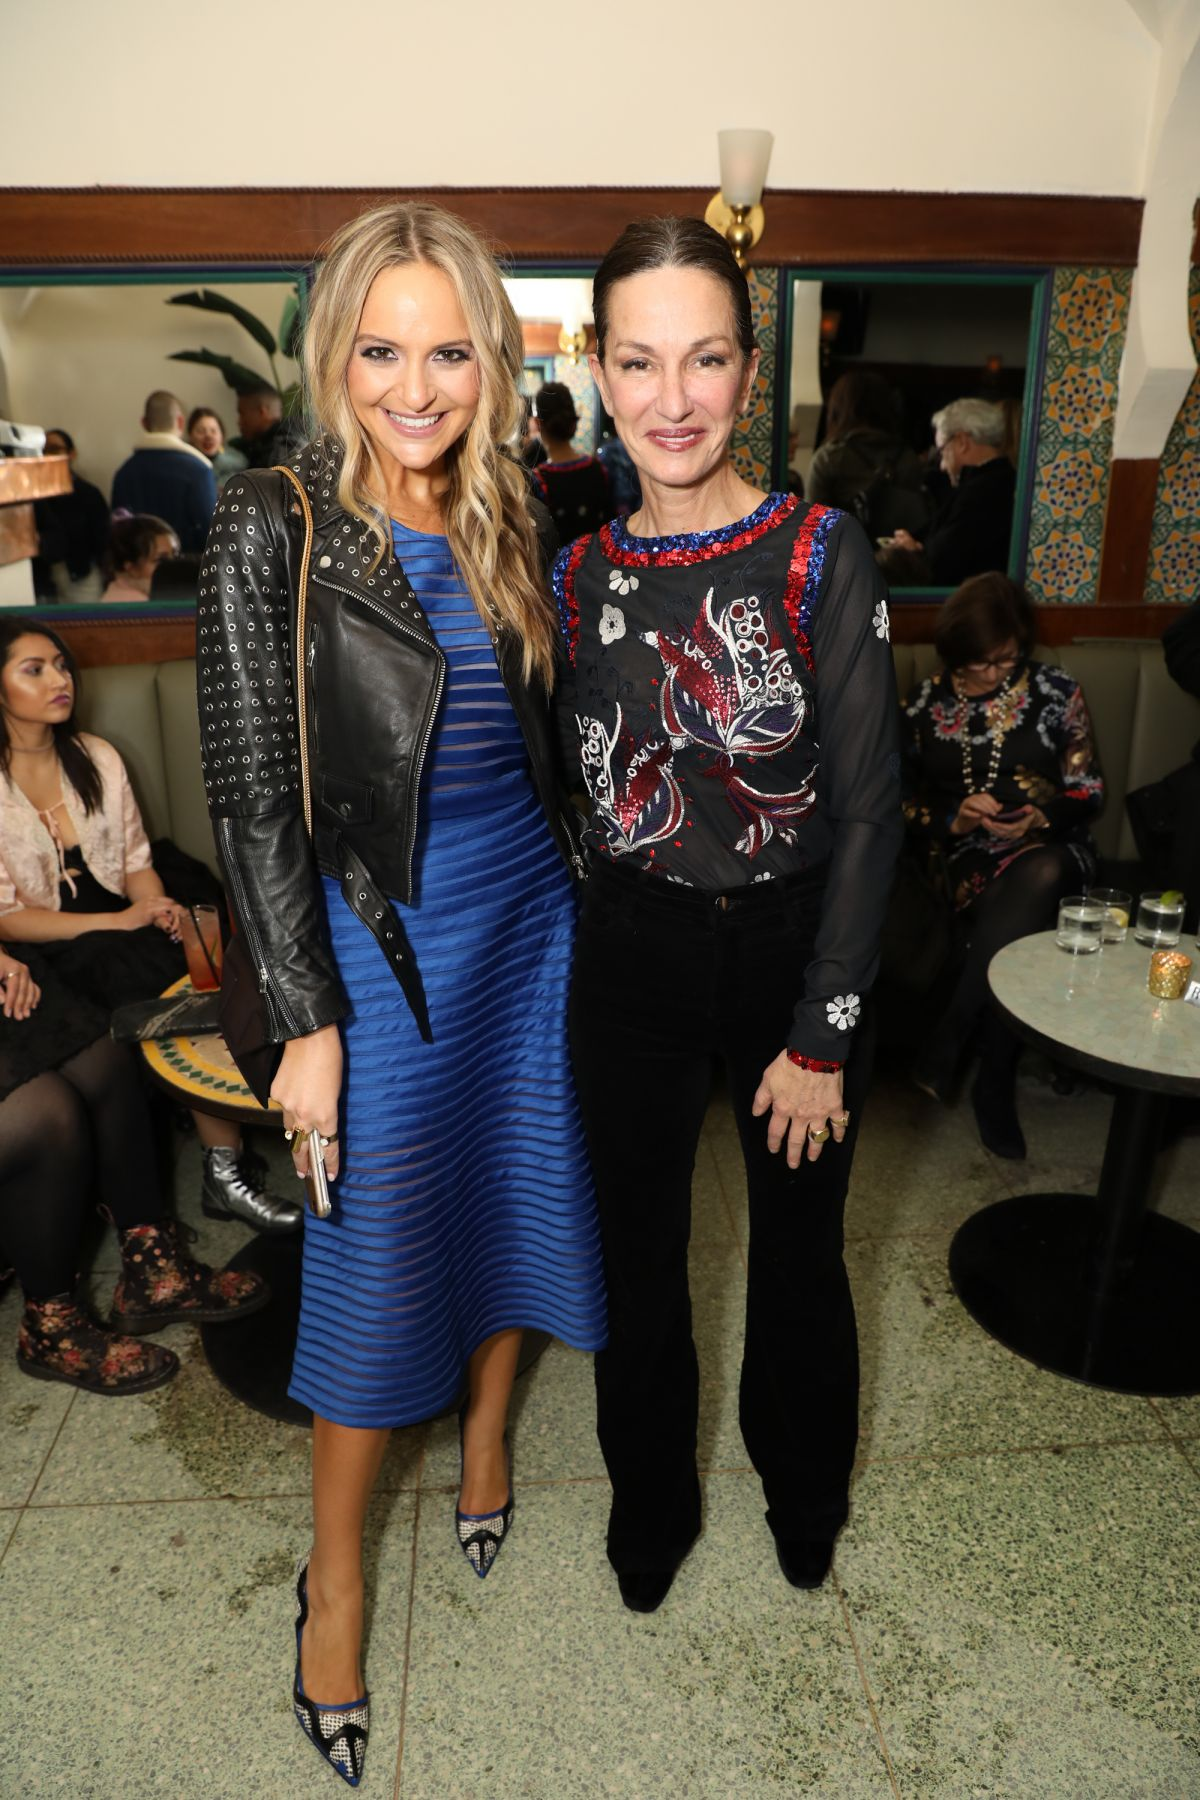 JACKIE MIRANNE and CYNTHIA ROWELY at Cynthia Rowley NYFW Party in New York 02/12/2017